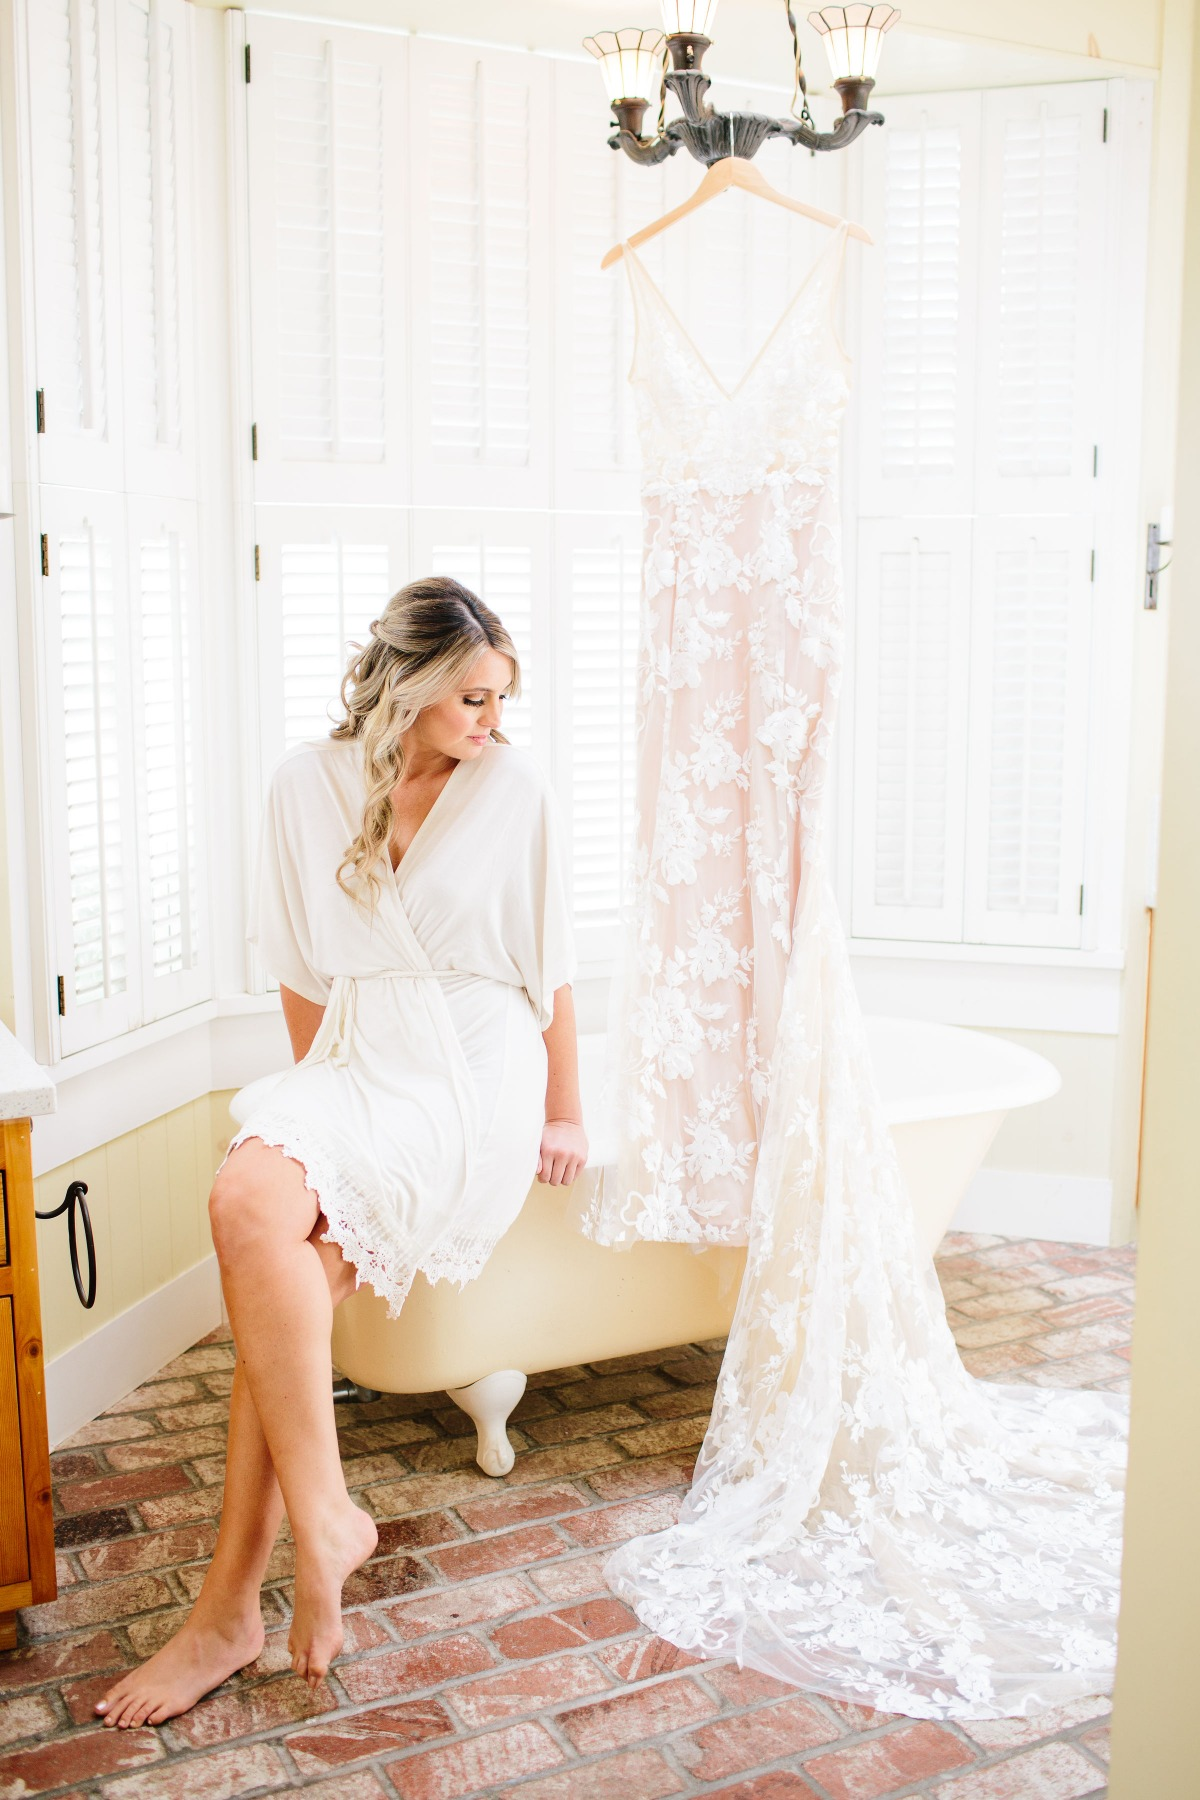 Blush lined lace wedding dress